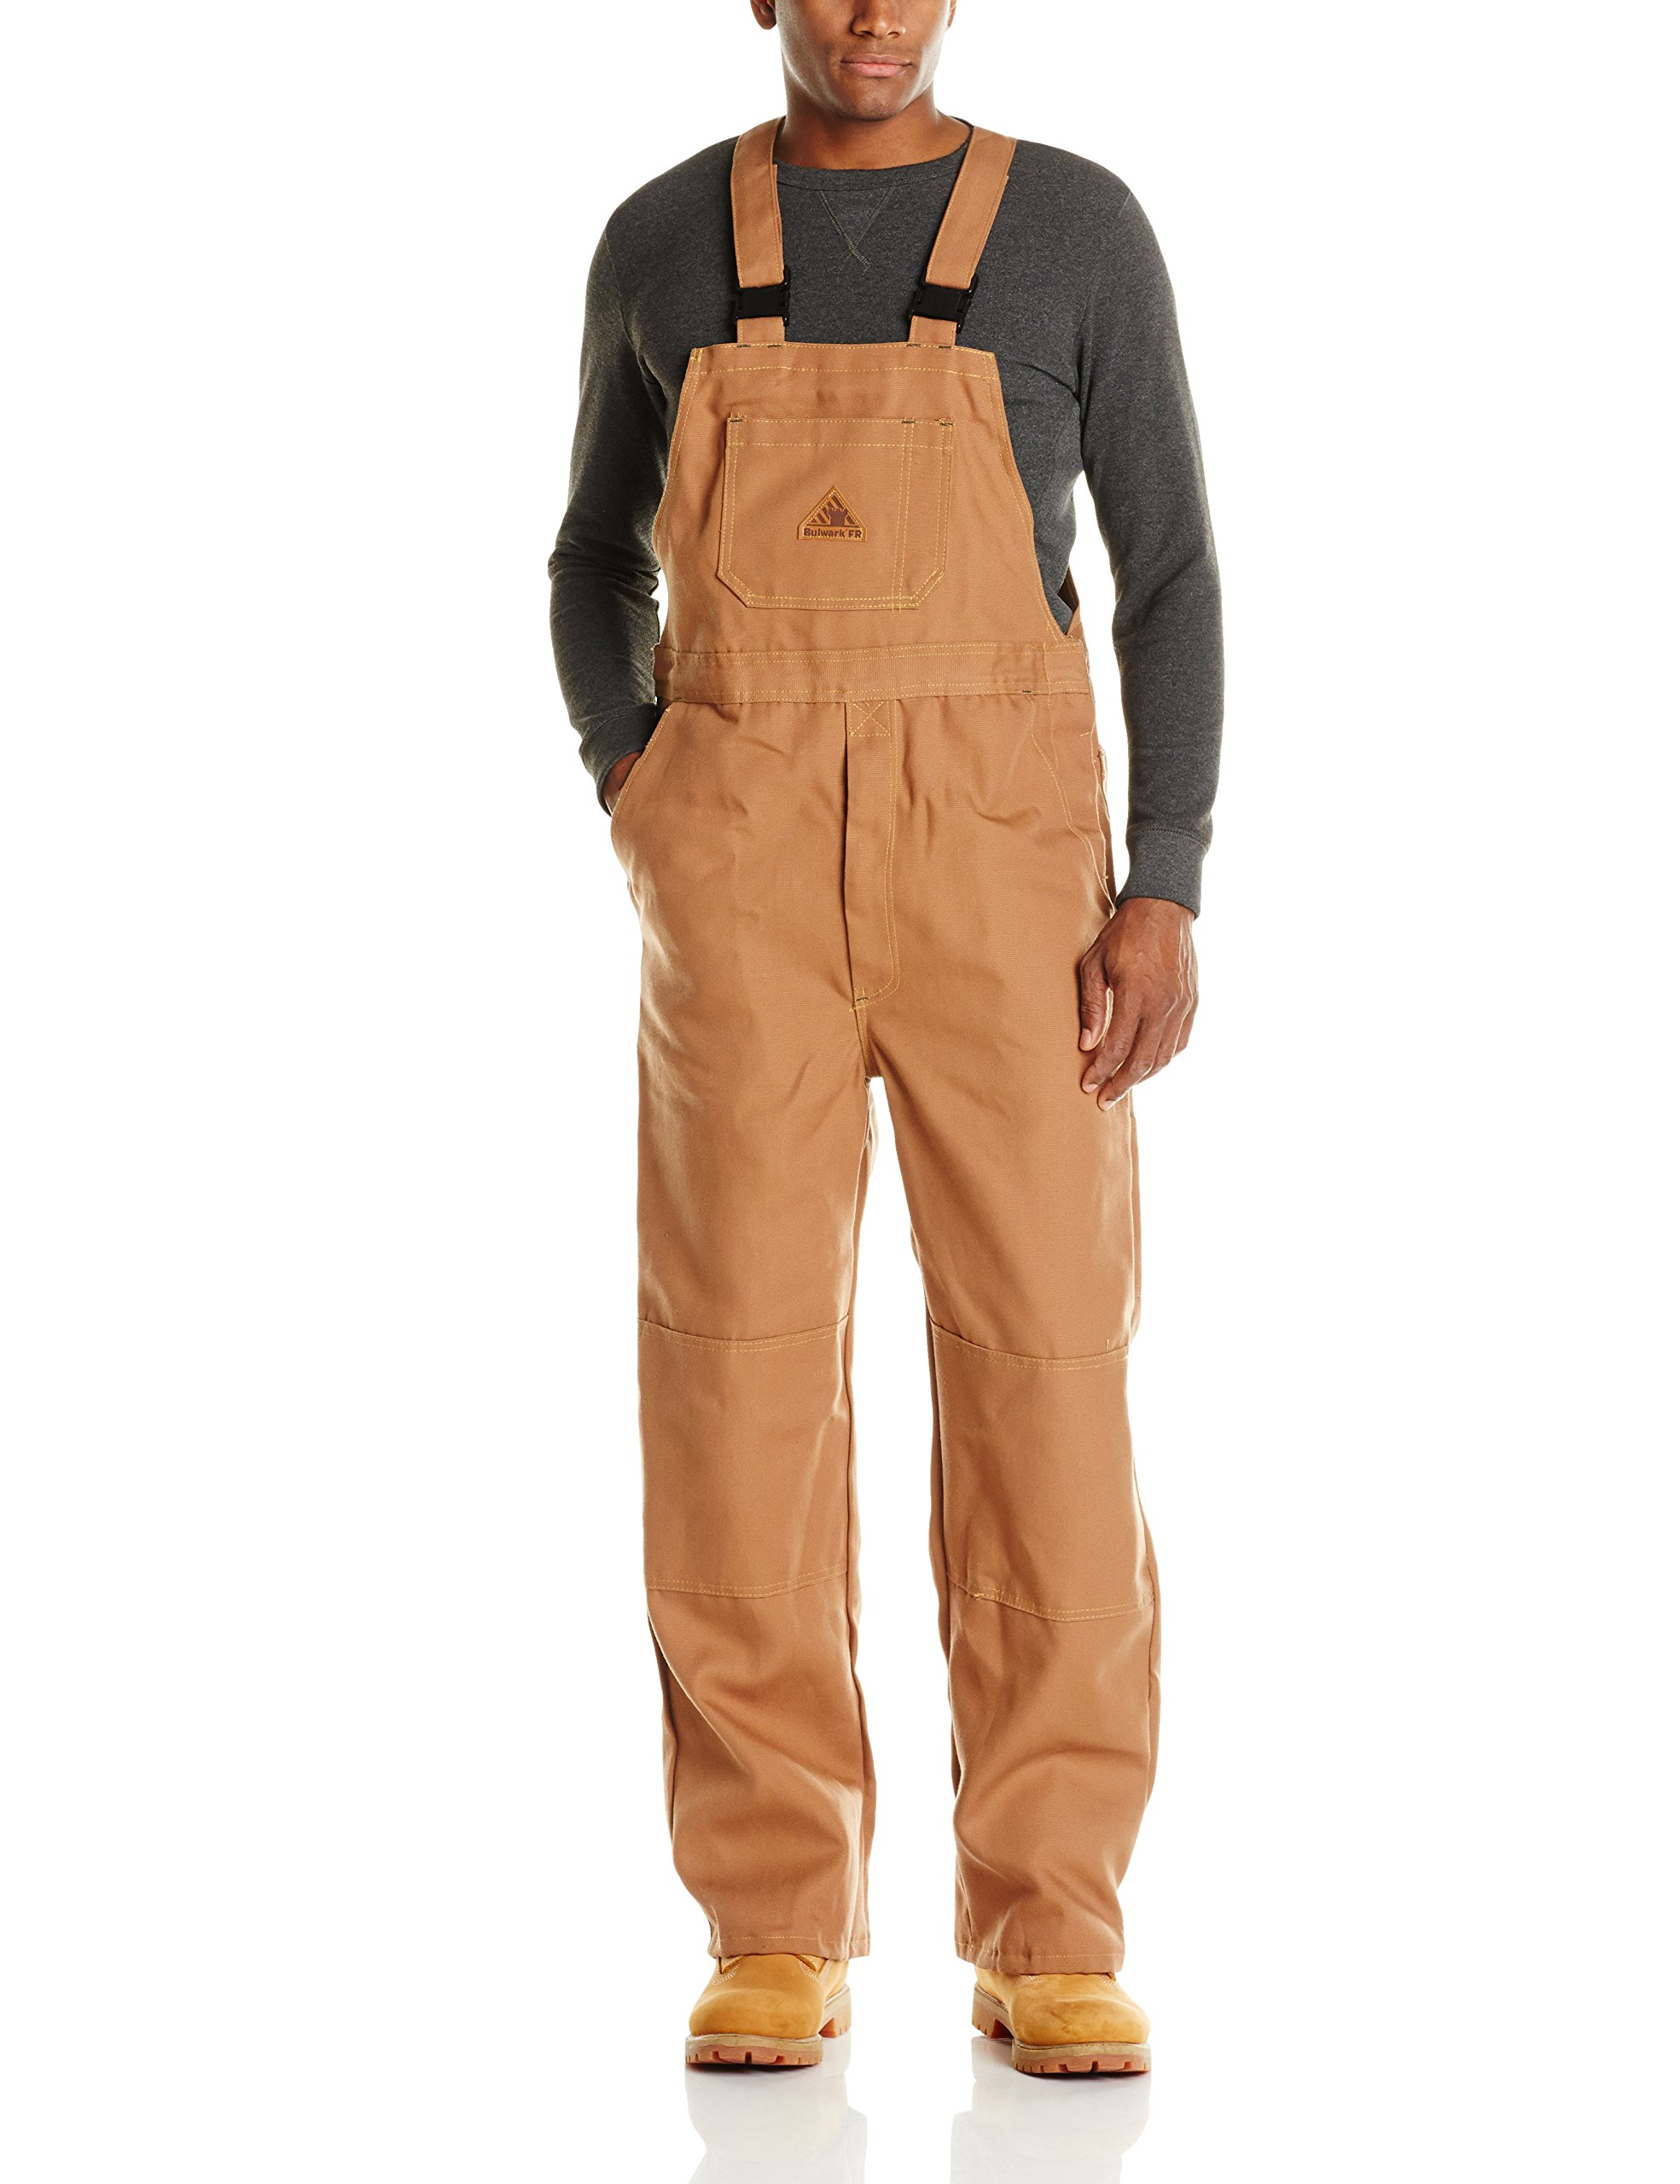 Bulwark Flame Resistant 11 oz Cotton/Nylon Excel FR ComforTouch Regular Duck Unlined Bib Overall with Two Large Hip Pockets, Brown Duck, Large